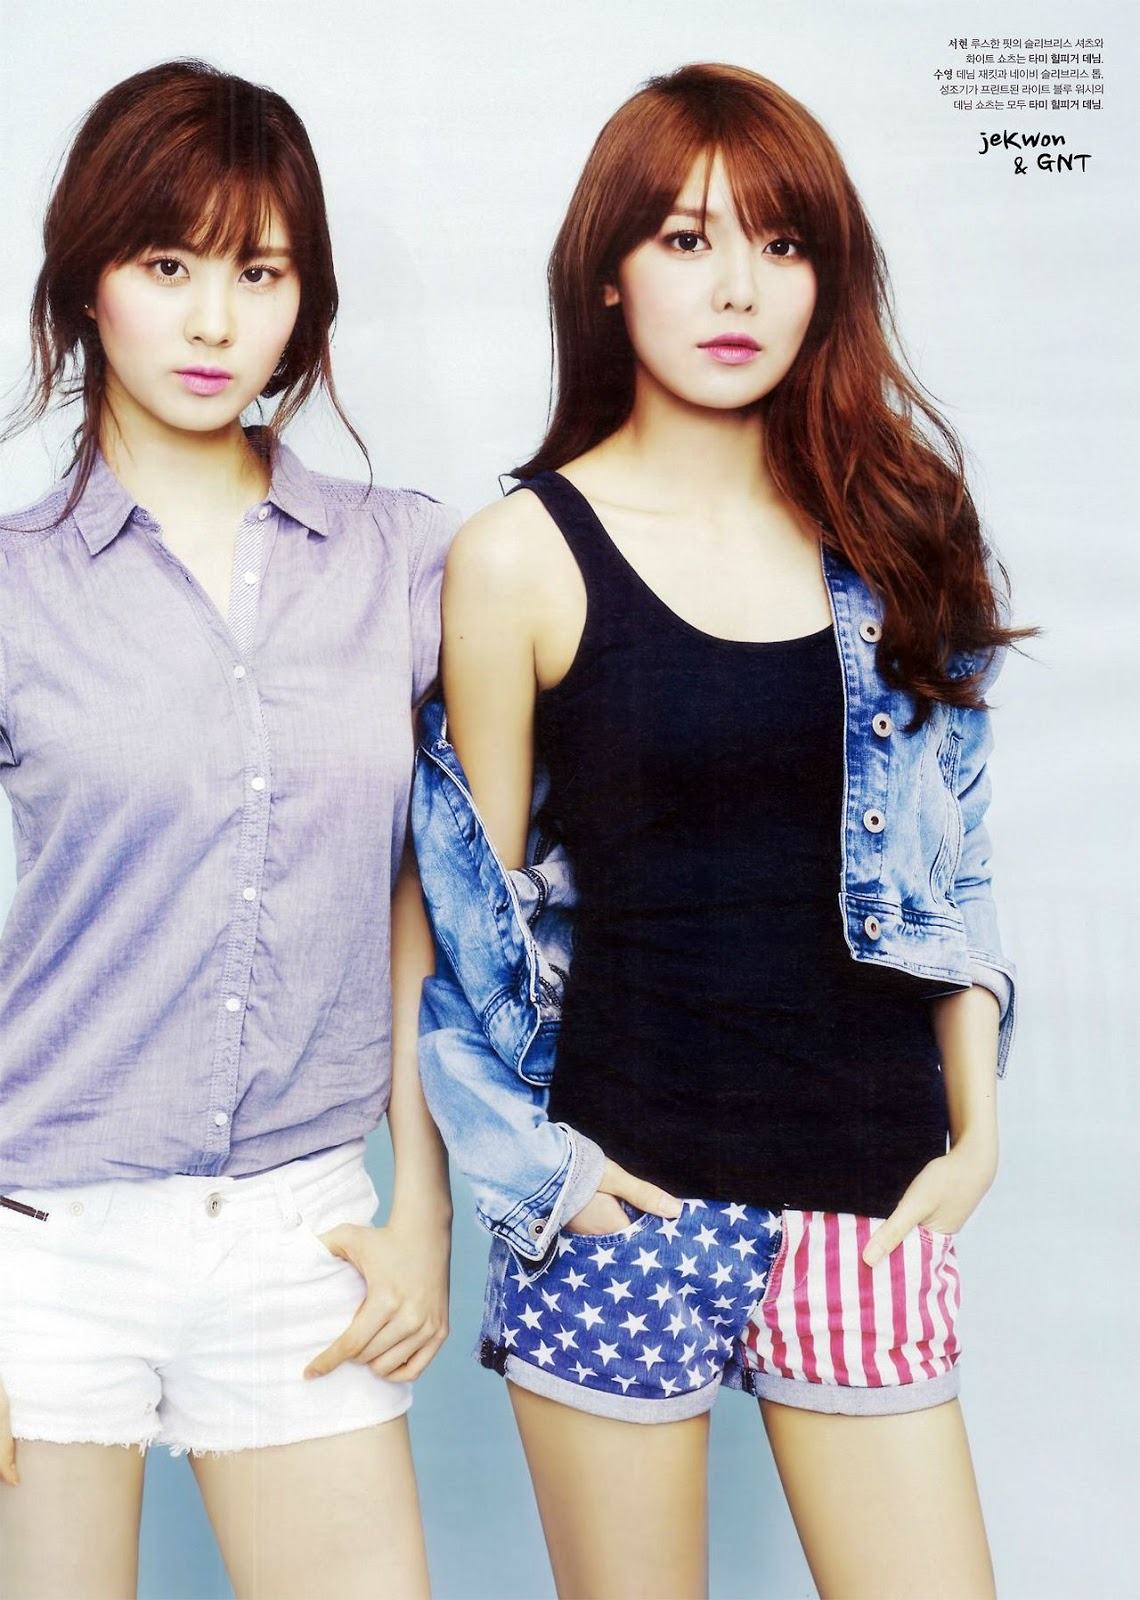 Snsd Seohyun Airport Fashion: SNSD Seohyun Sooyoung High Cut May Pictures